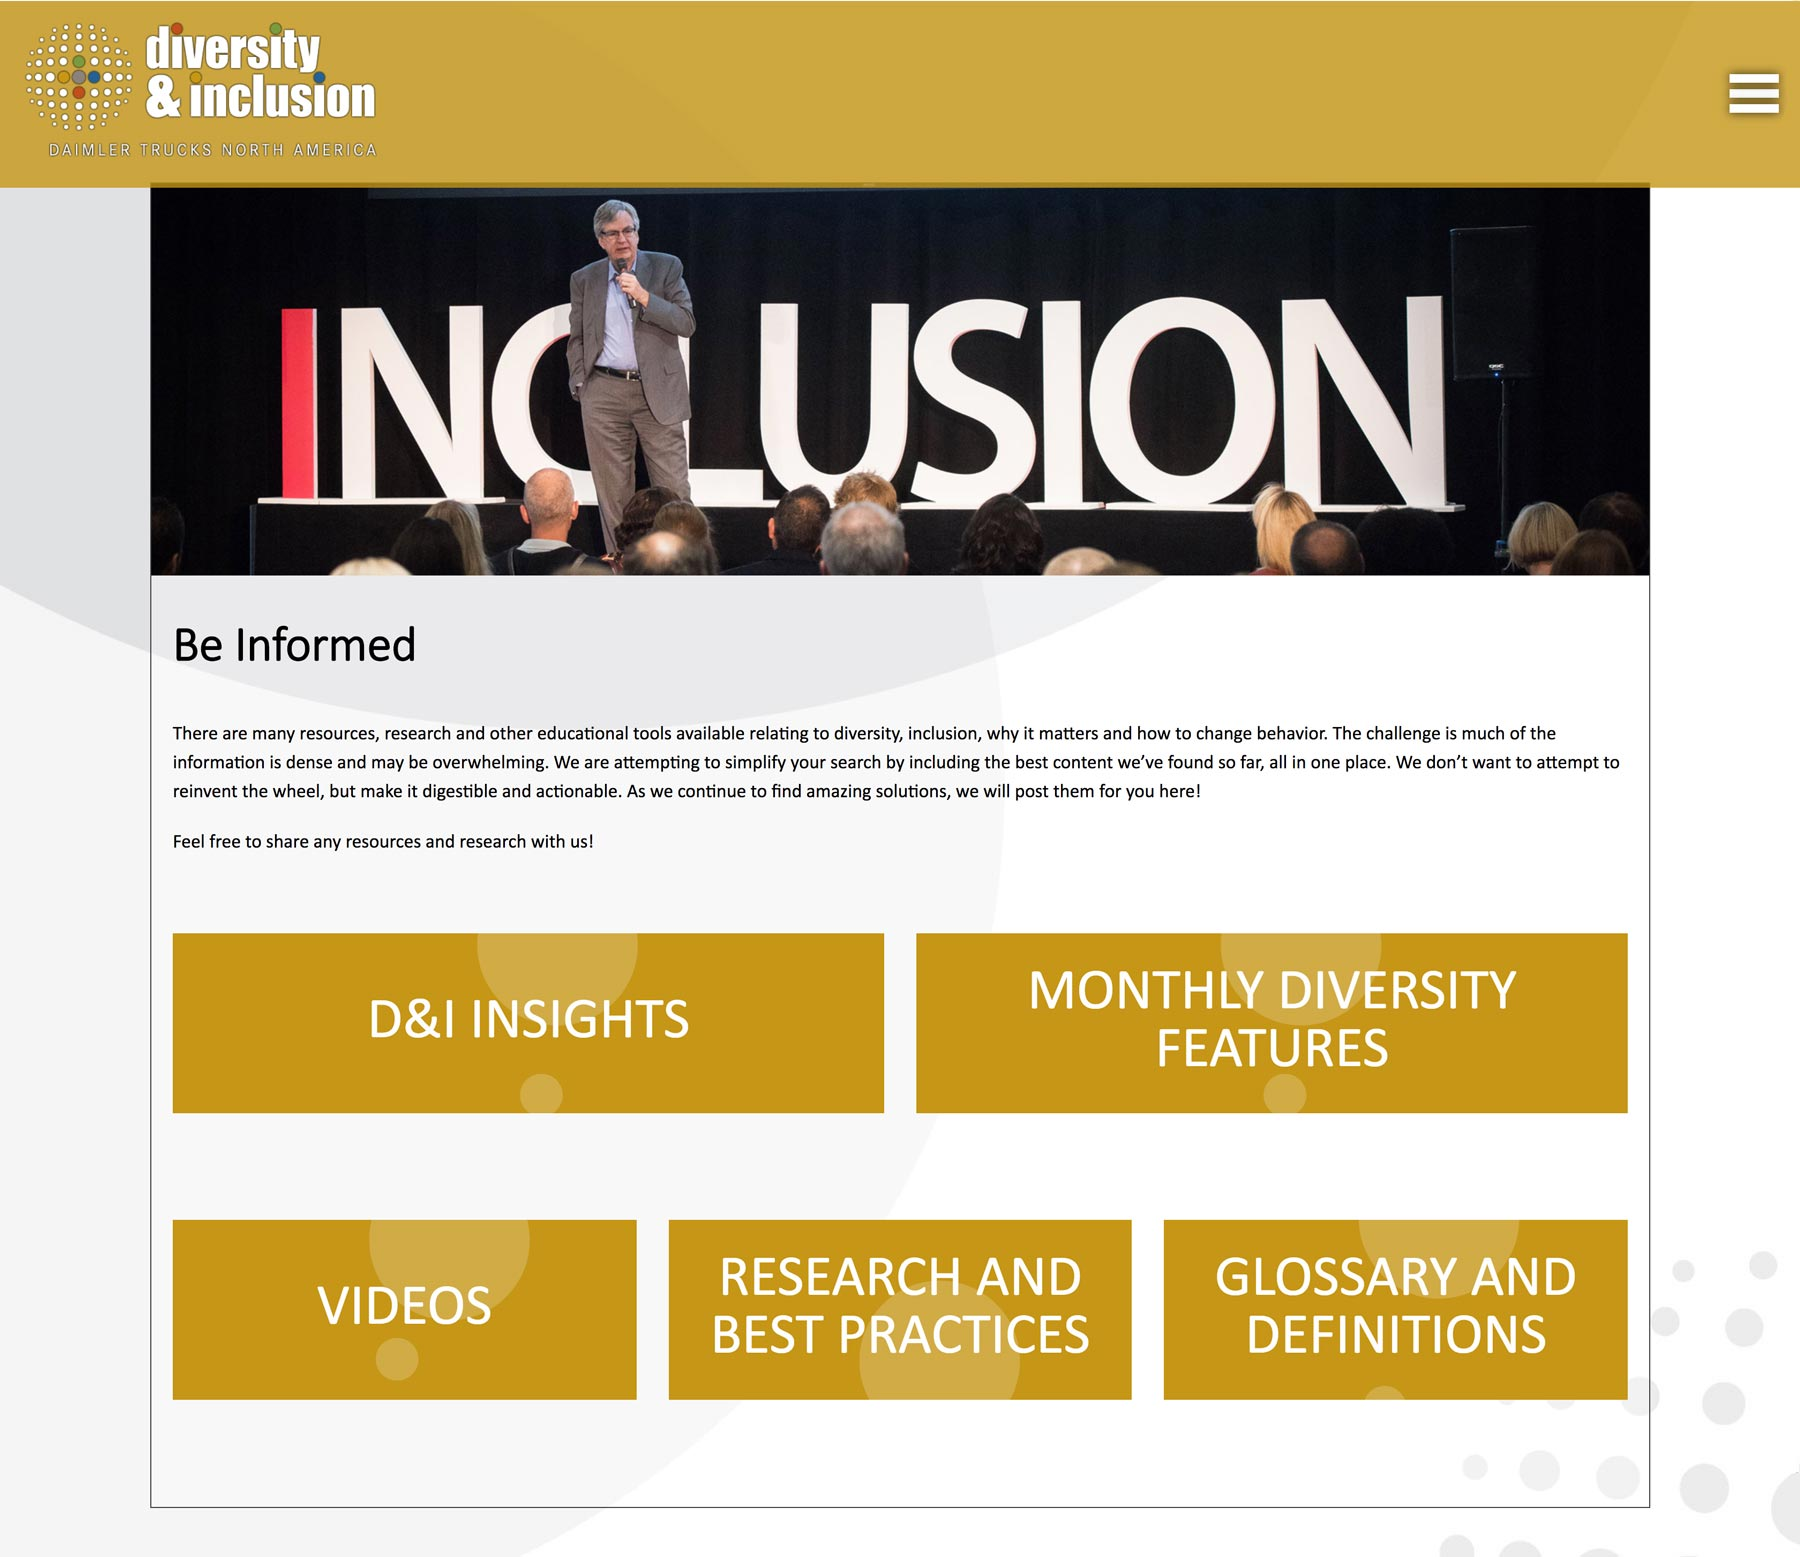 daimler trucks north america diversity and inclusion website be informed resource page designed by outside communications